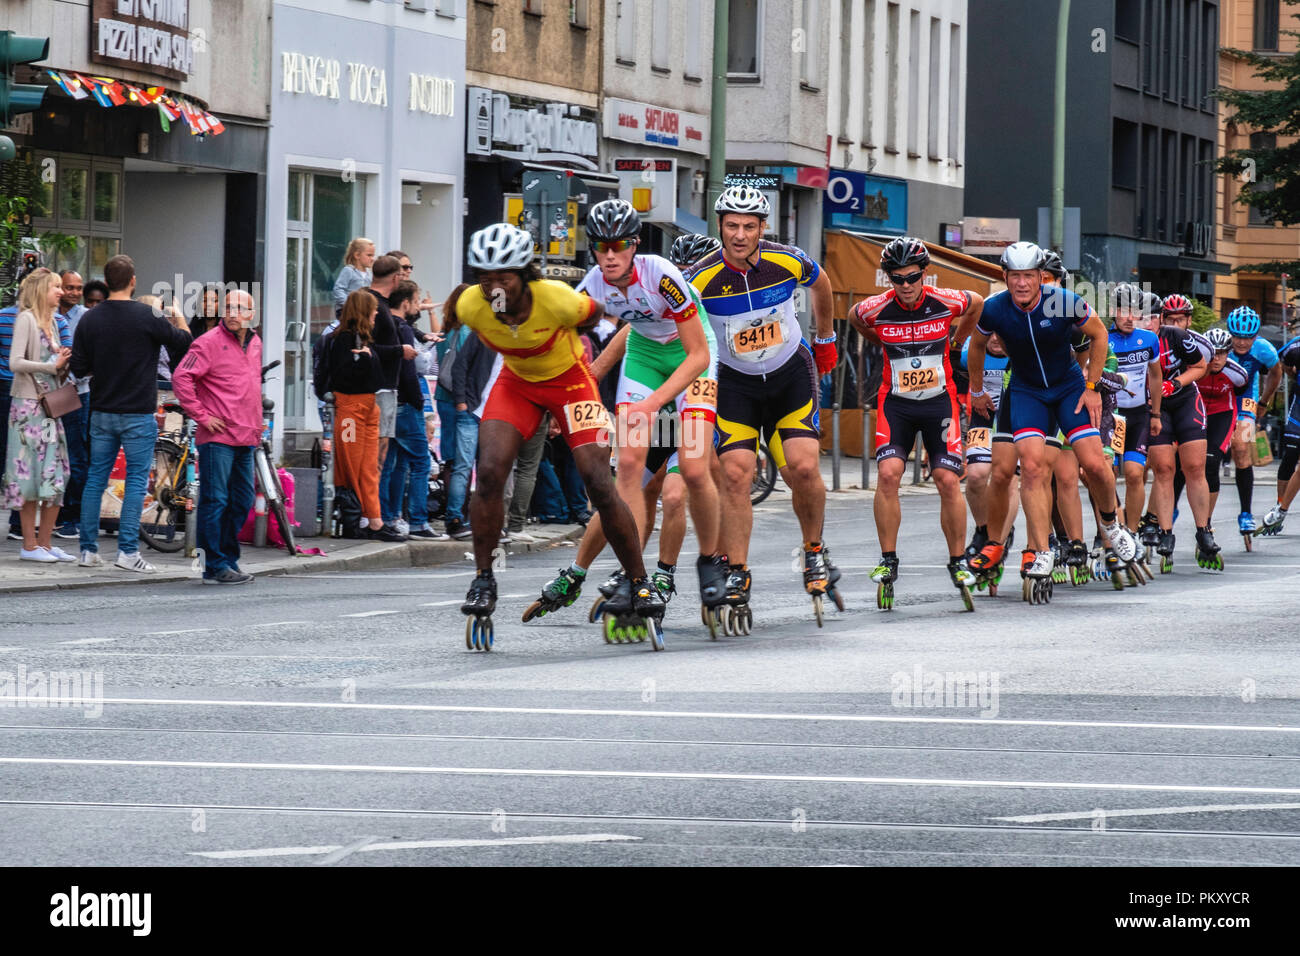 Berlin Germany, 15 September 2018. Annual Inline Skating Marathon. In line skaters pass through Rosenthaler Platz as they compete in the annual roller skating event. The event is the Grand Finale of the Inline skating season as skaters participants from 60 countries compete for the WORLD and GERMAN INLINE CUP Credit: Eden Breitz/Alamy Live News Stock Photo